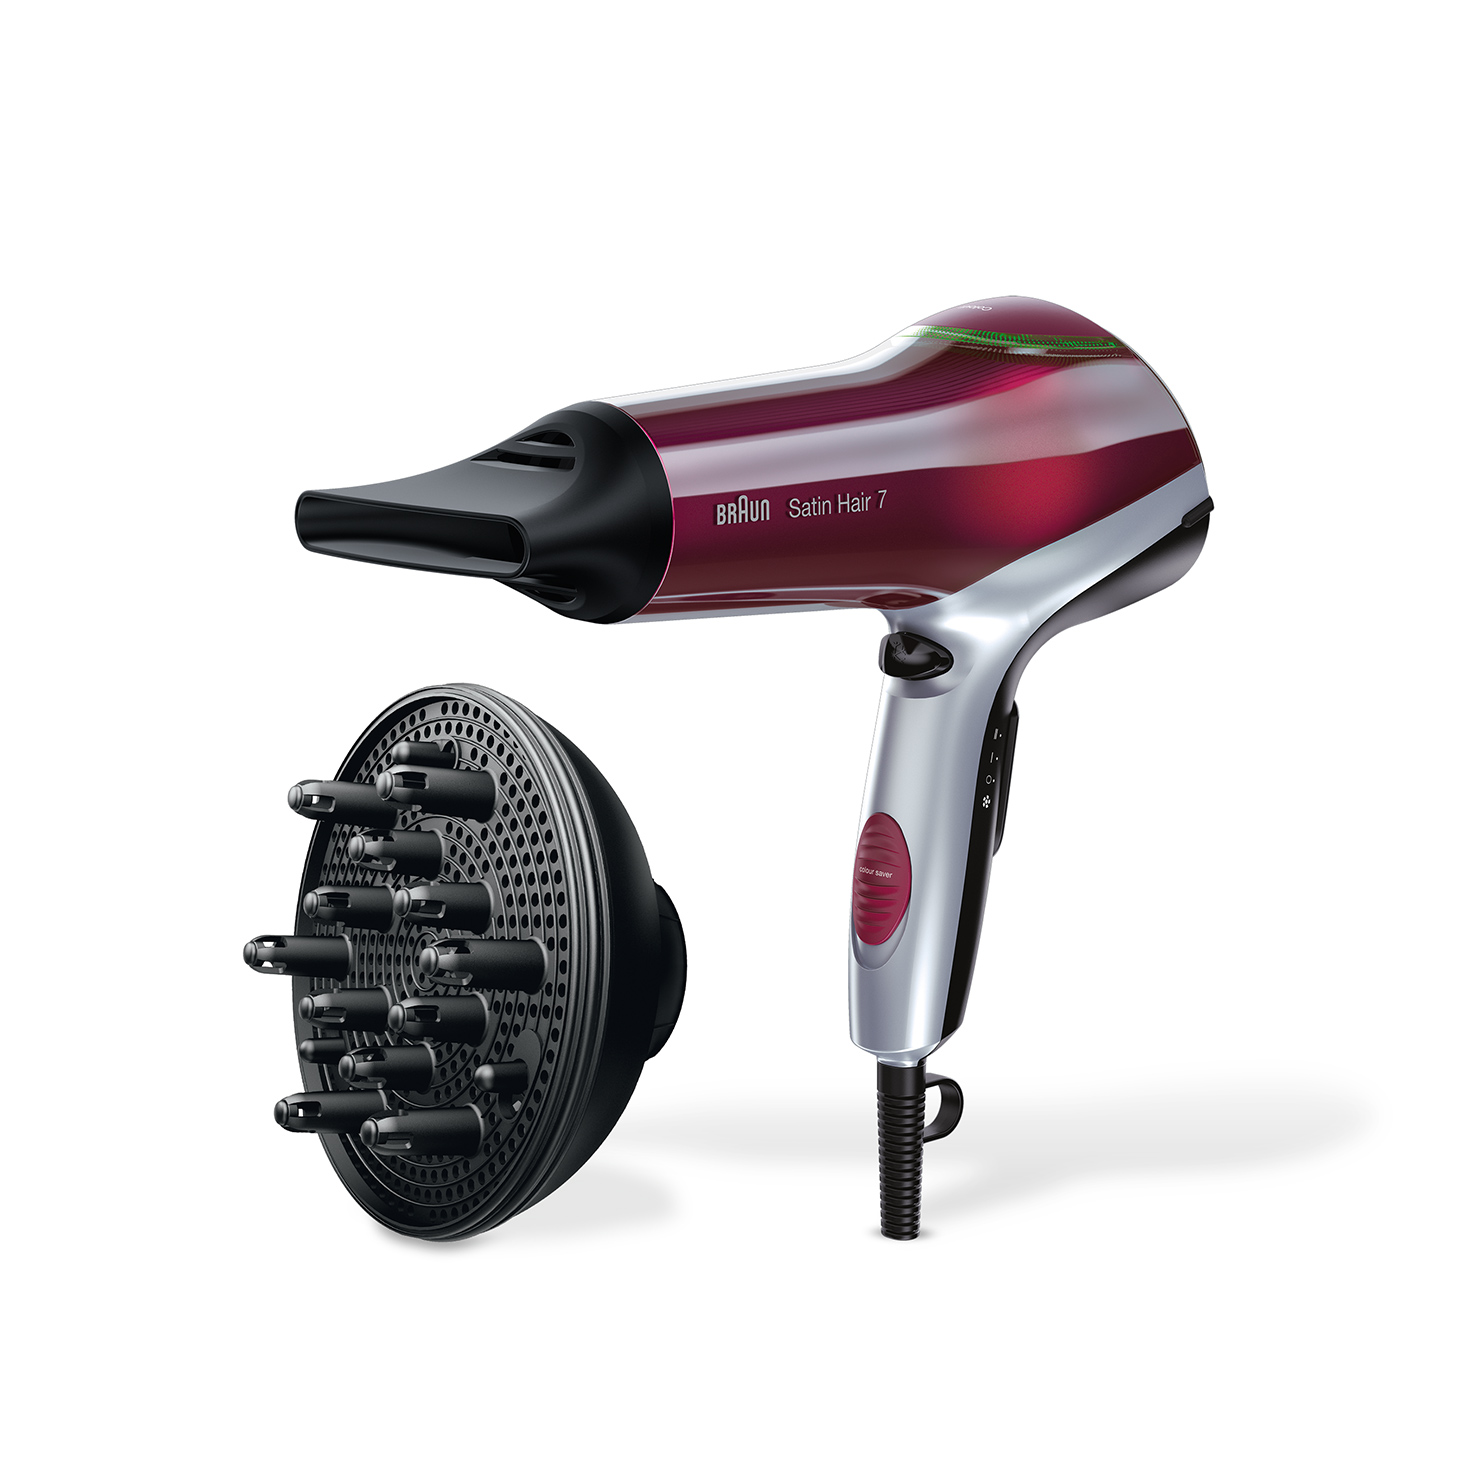 Braun Satin Hair 7 HD770 with Colour Saver technology and diffuser